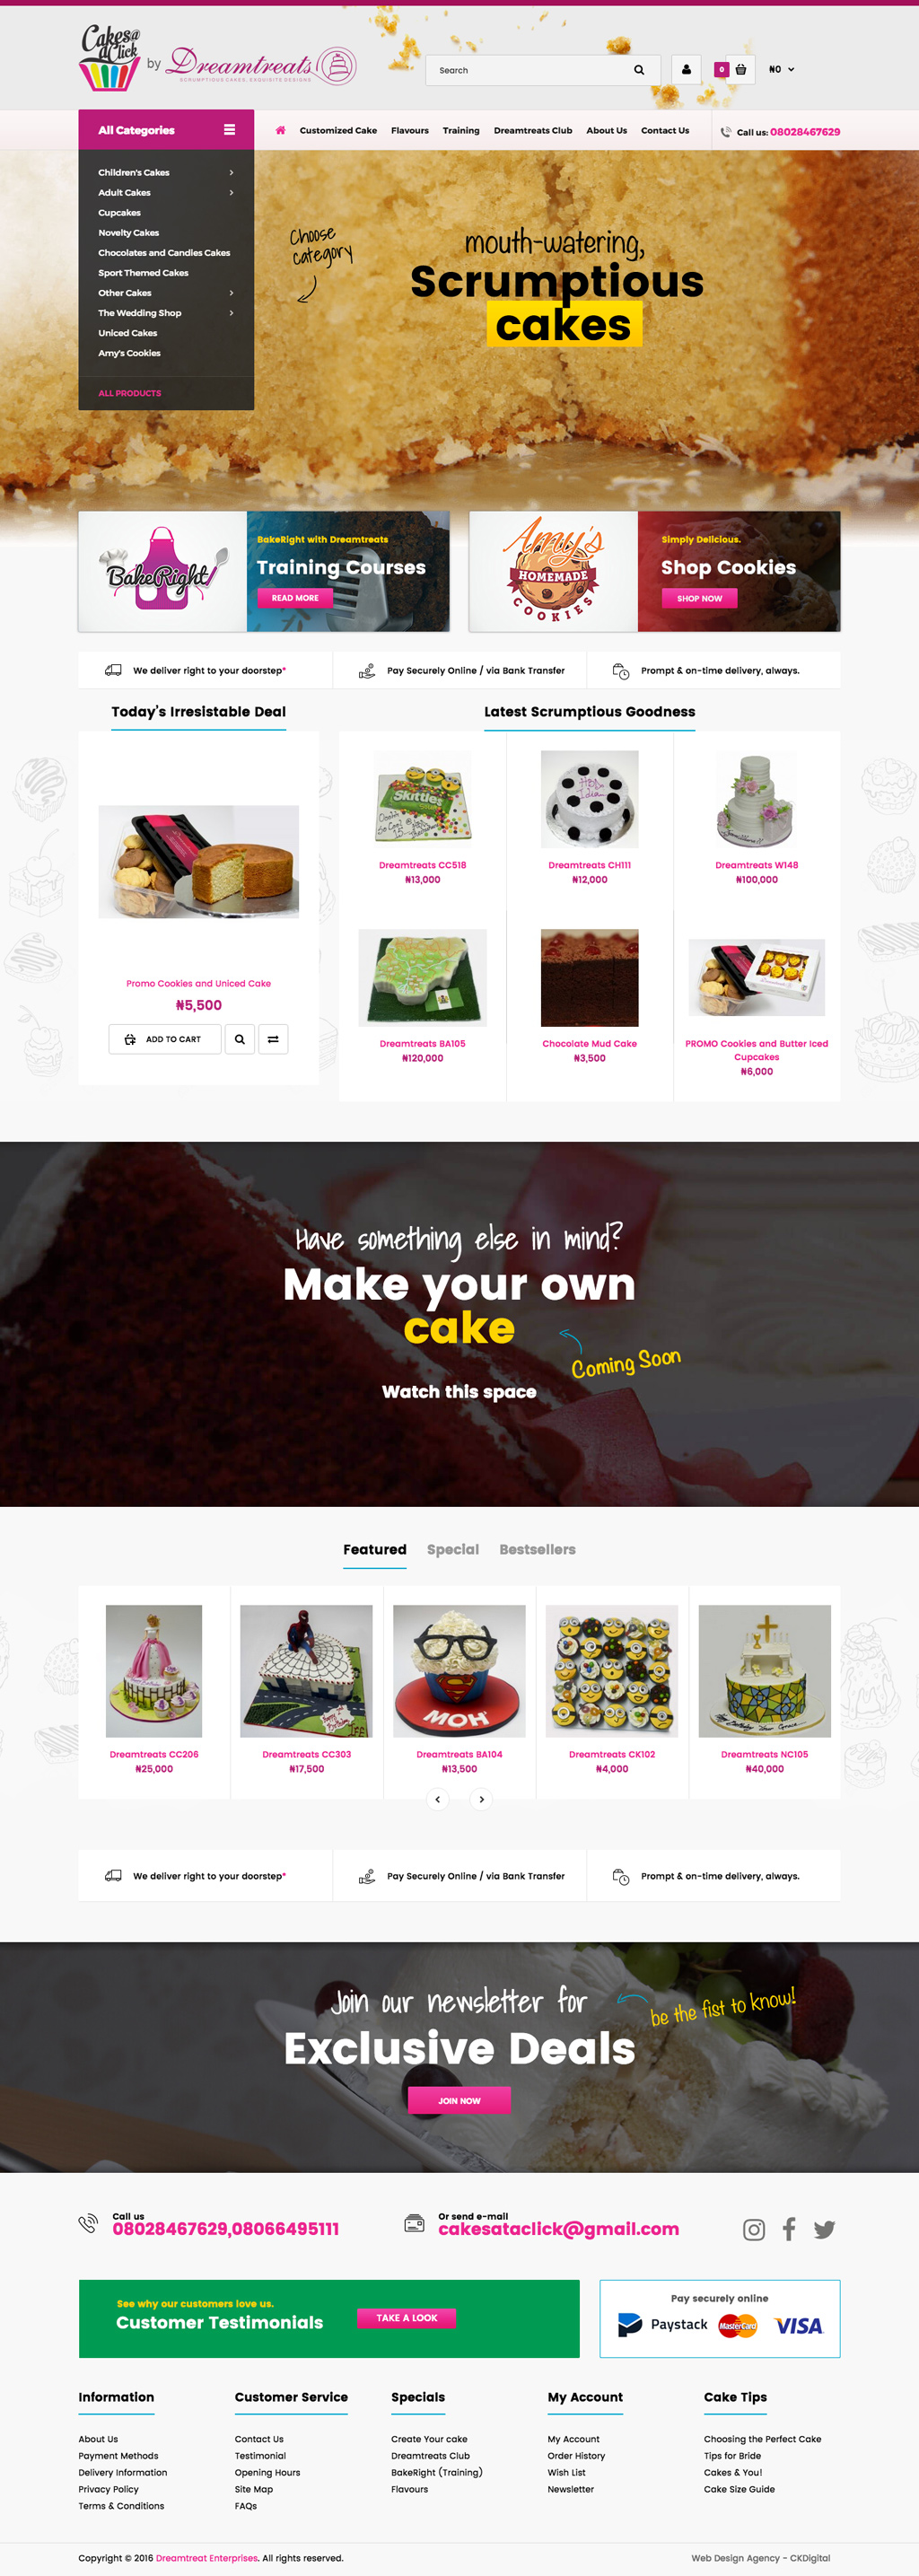 Dreamtreats Cakes Website Design - Home Page